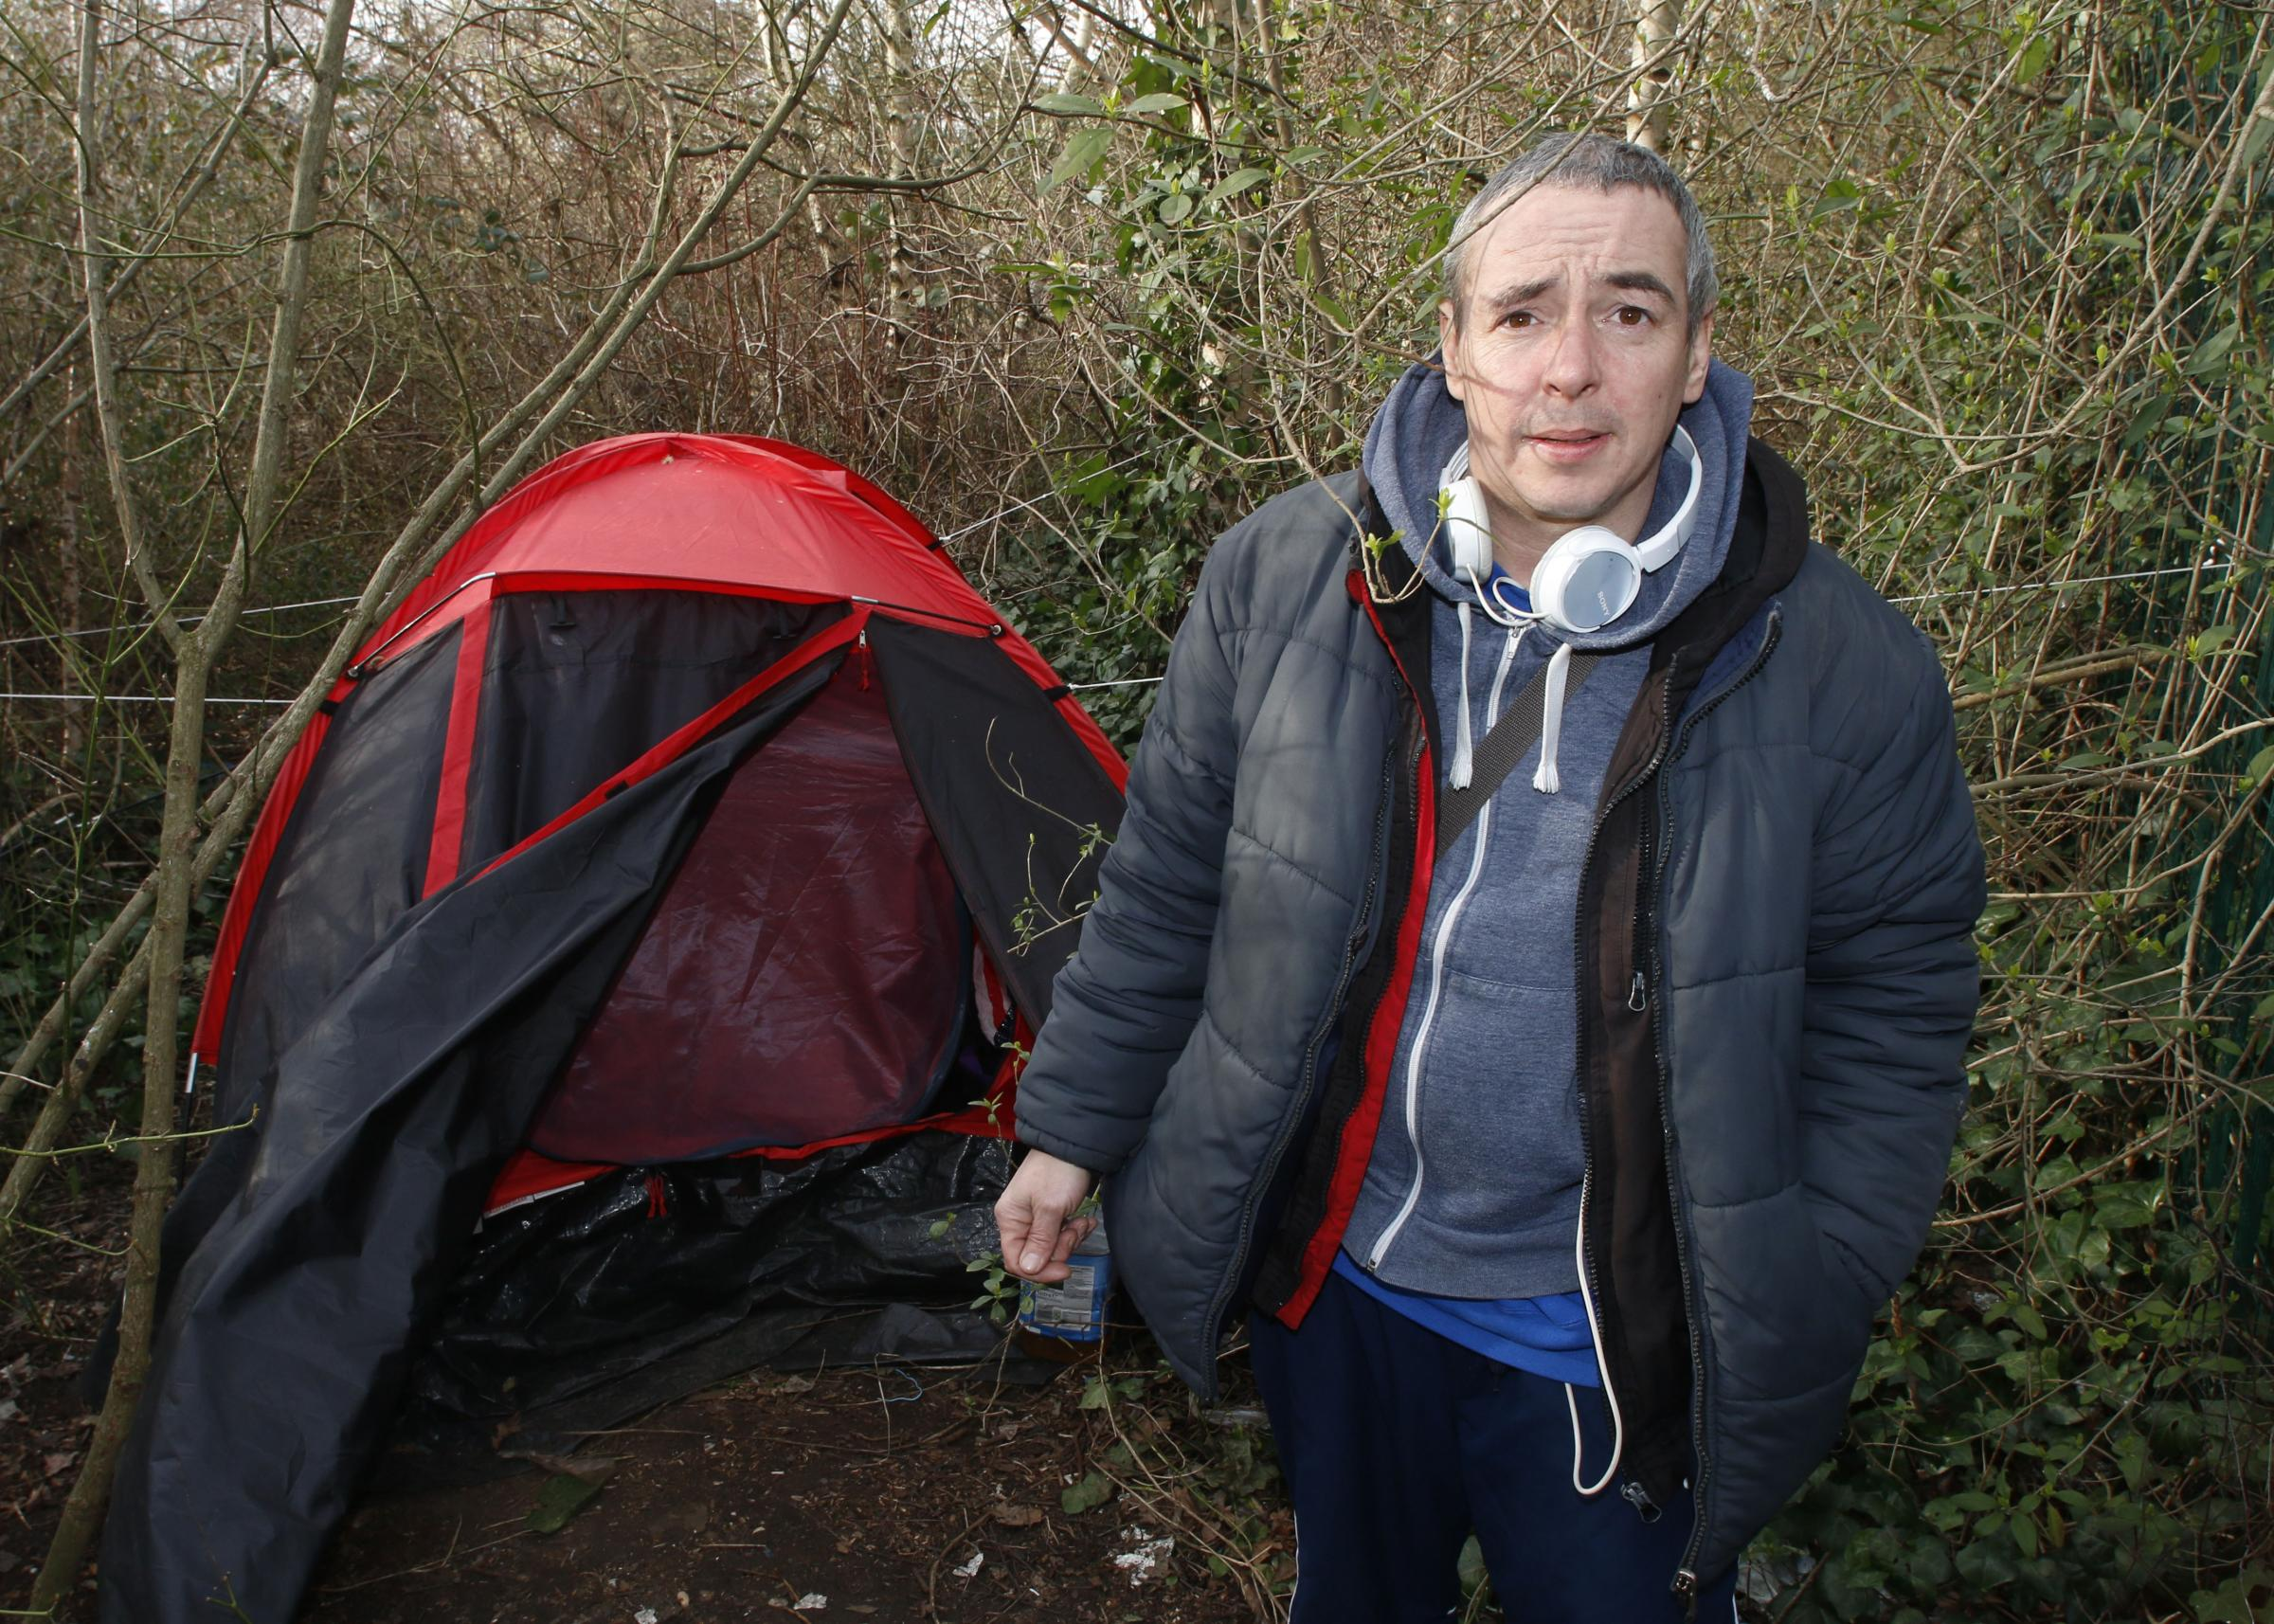 Mystery u0027council employeeu0027 tries to evict homeless man living in a tent in a  sc 1 st  Croydon Guardian & Mystery u0027council employeeu0027 tries to evict homeless man living in a ...